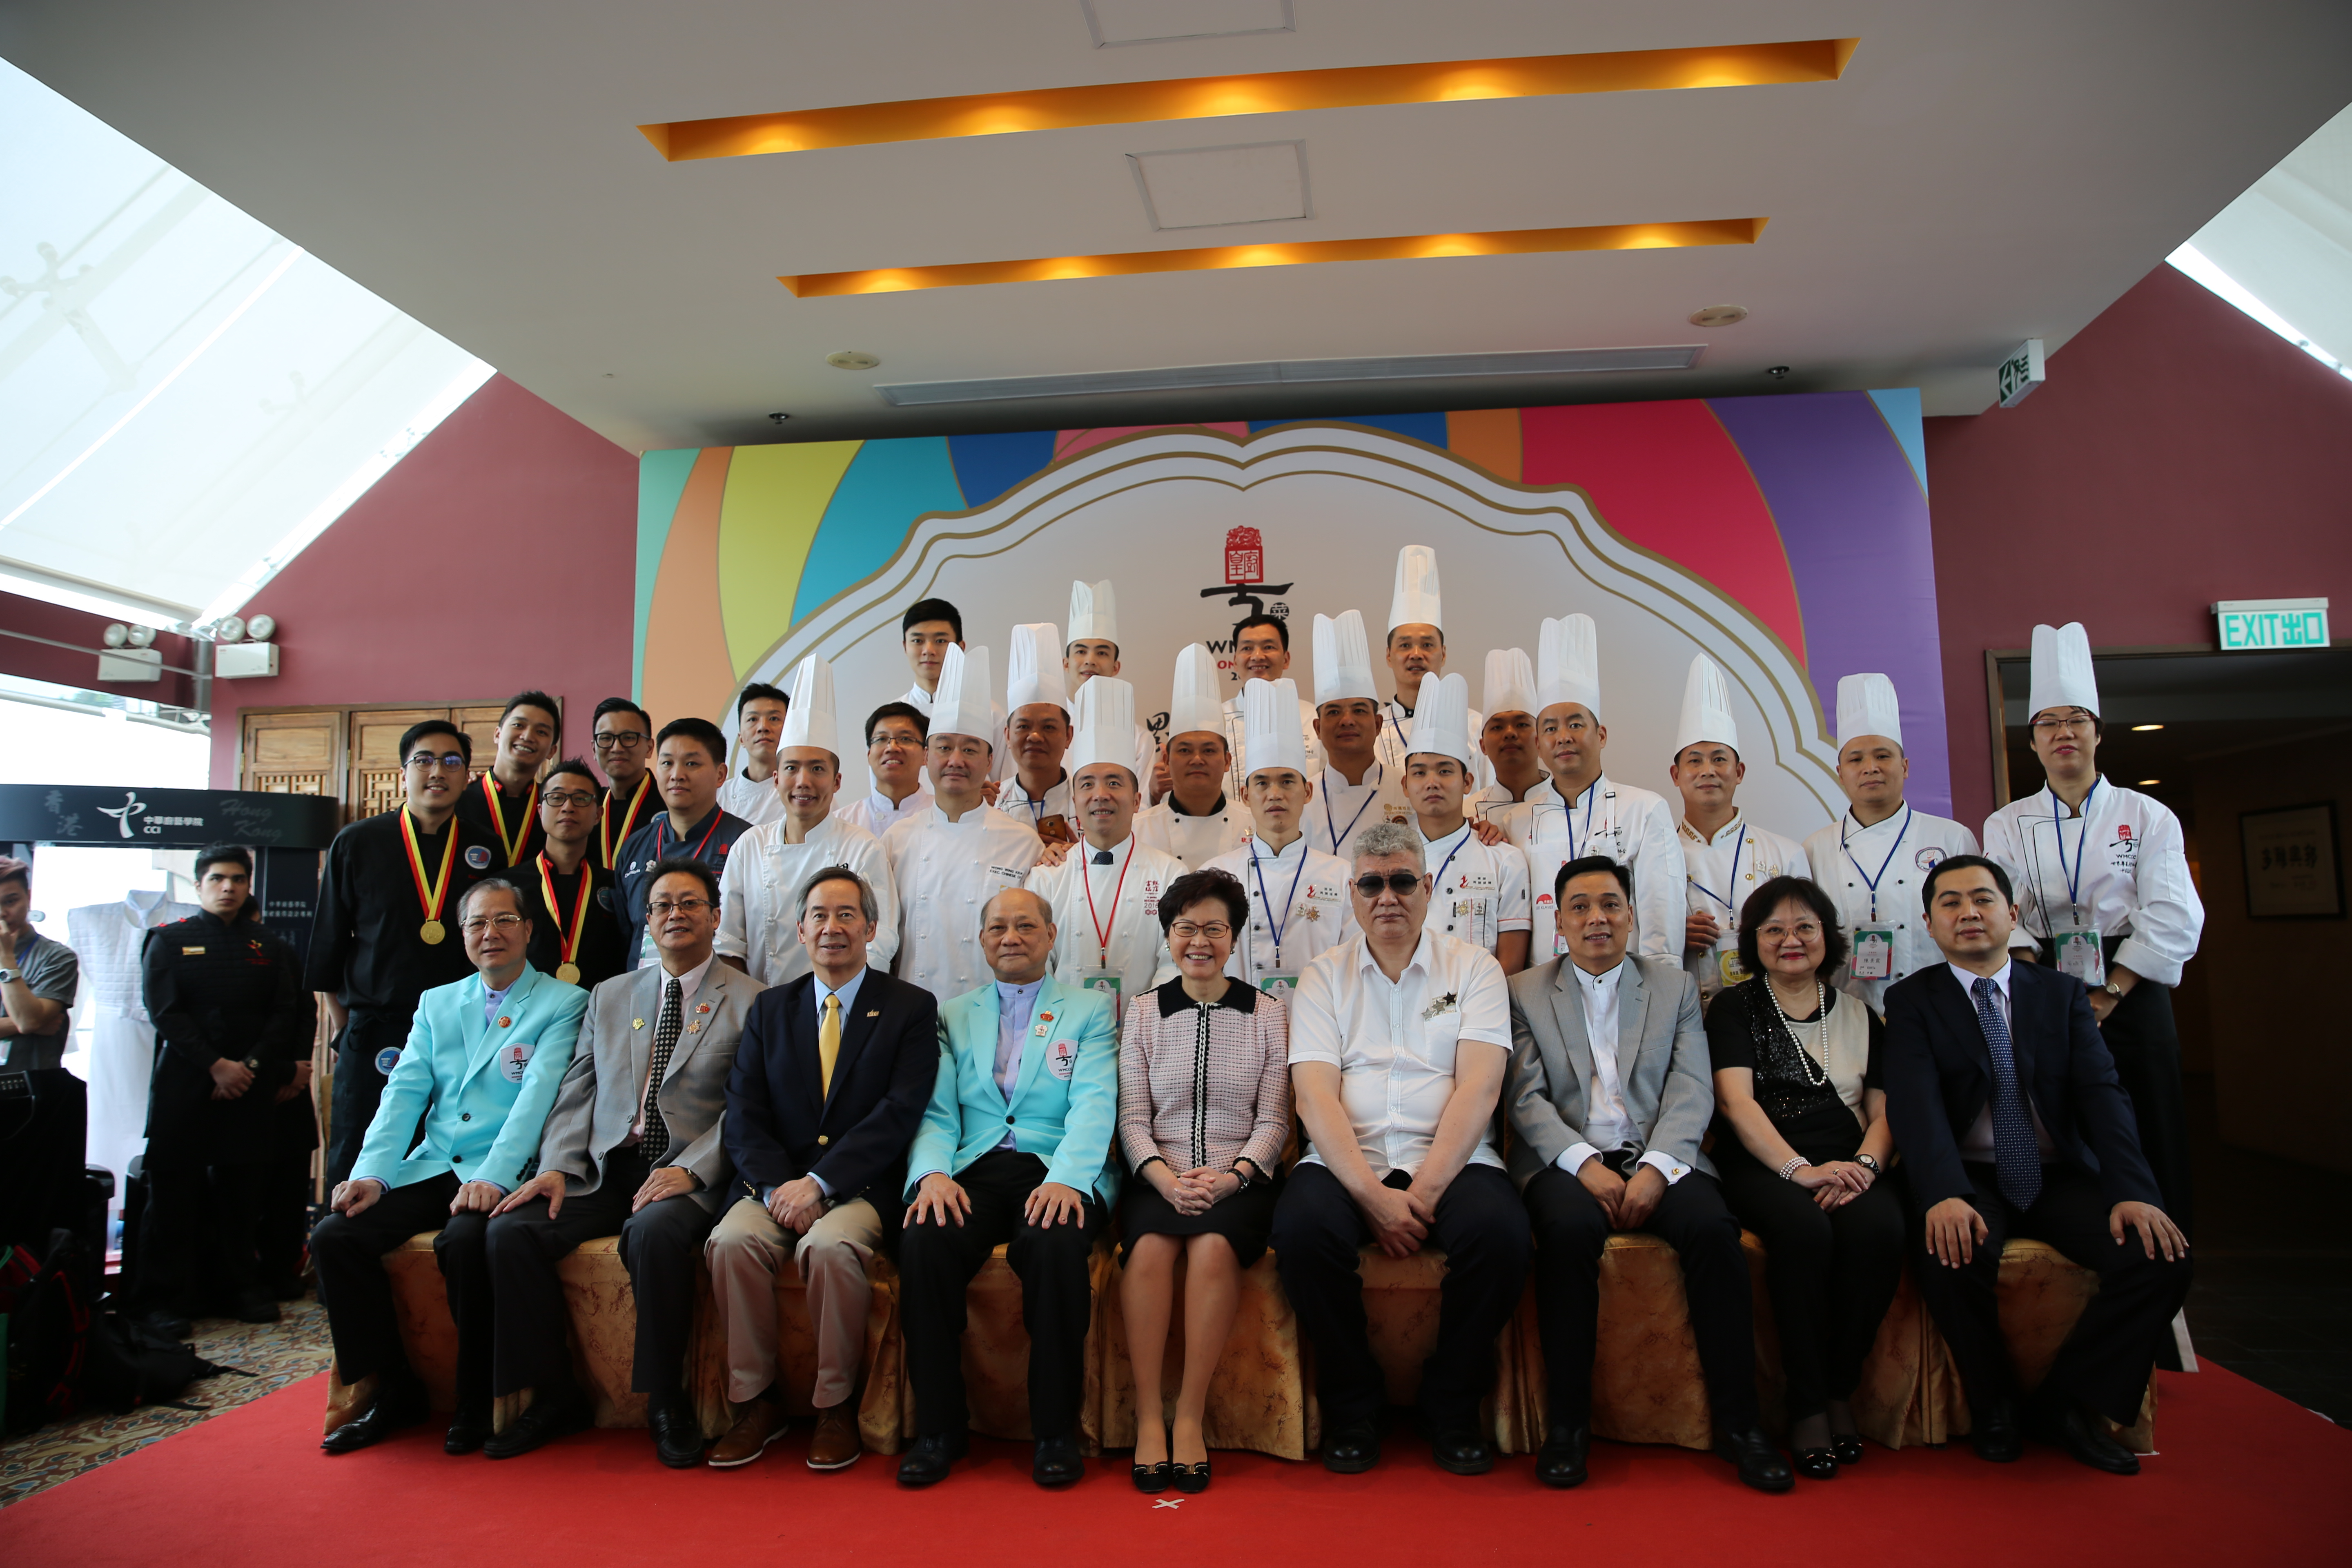 The Chief Executive Carrie Lam visited CCI